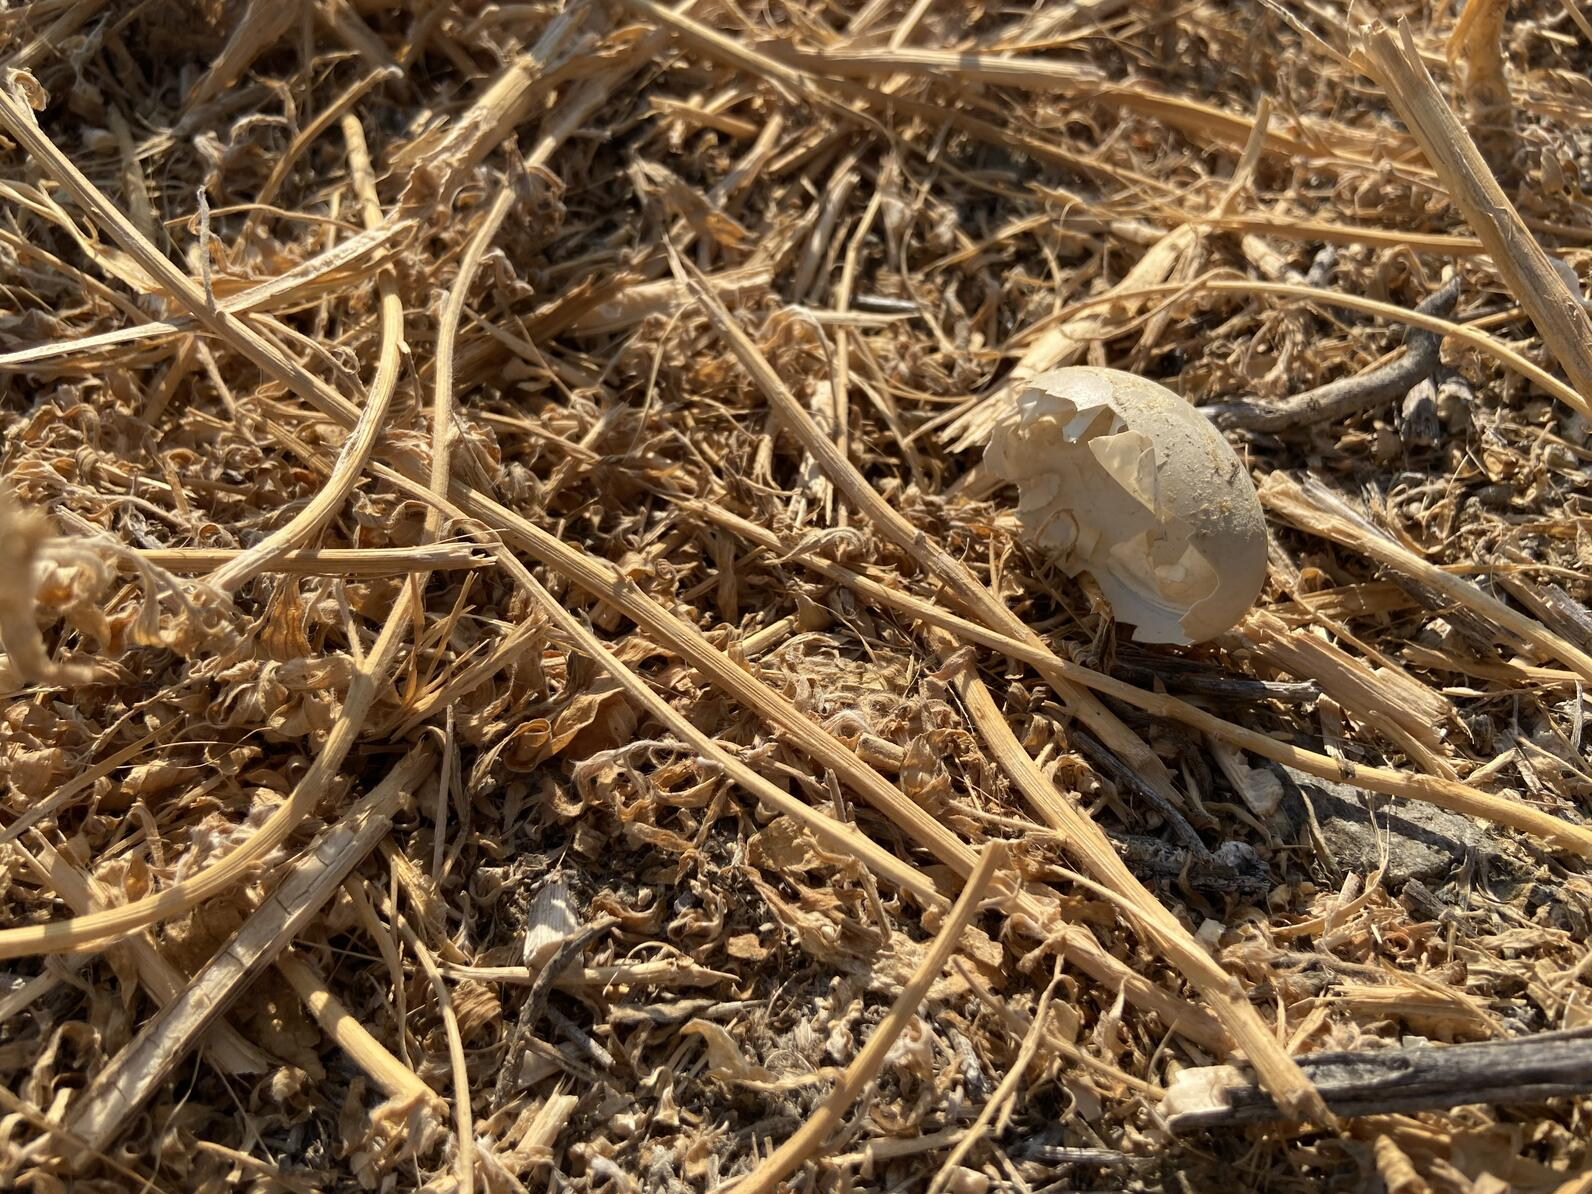 Egg shell on the ground